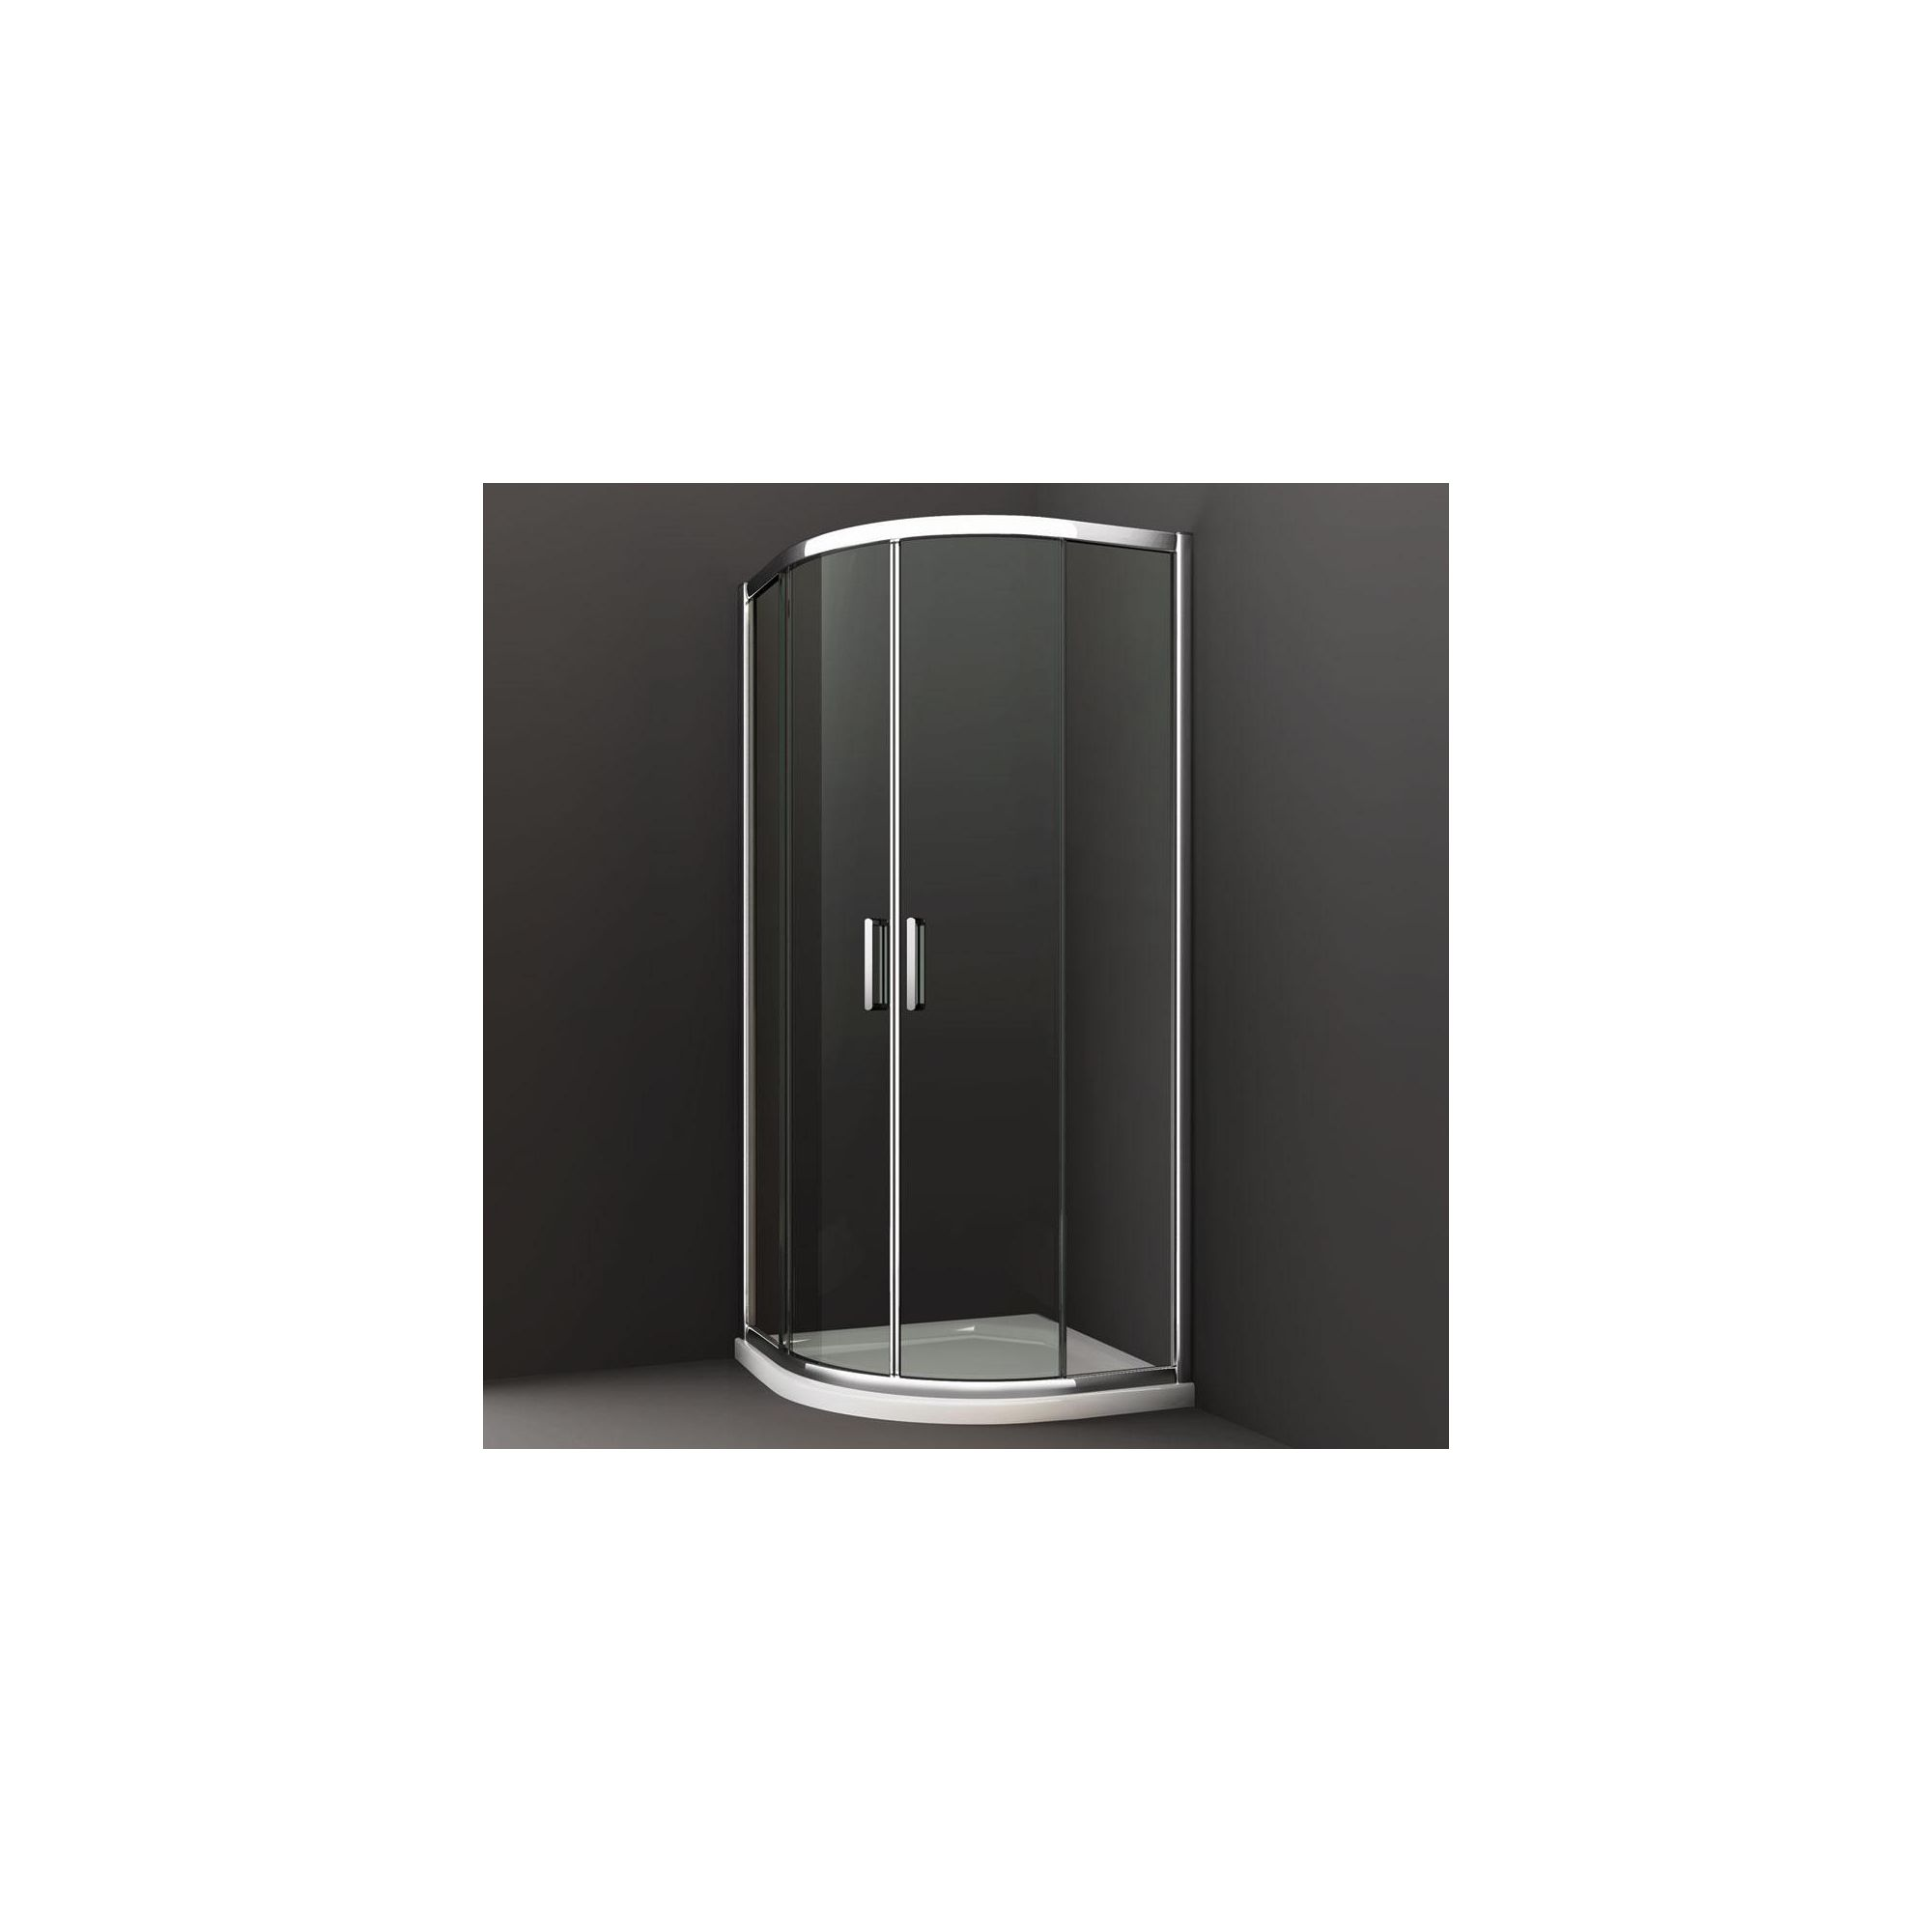 Merlyn Series 8 Double Quadrant Shower Door, 800mm x 800mm, Chrome Frame, 8mm Glass at Tesco Direct